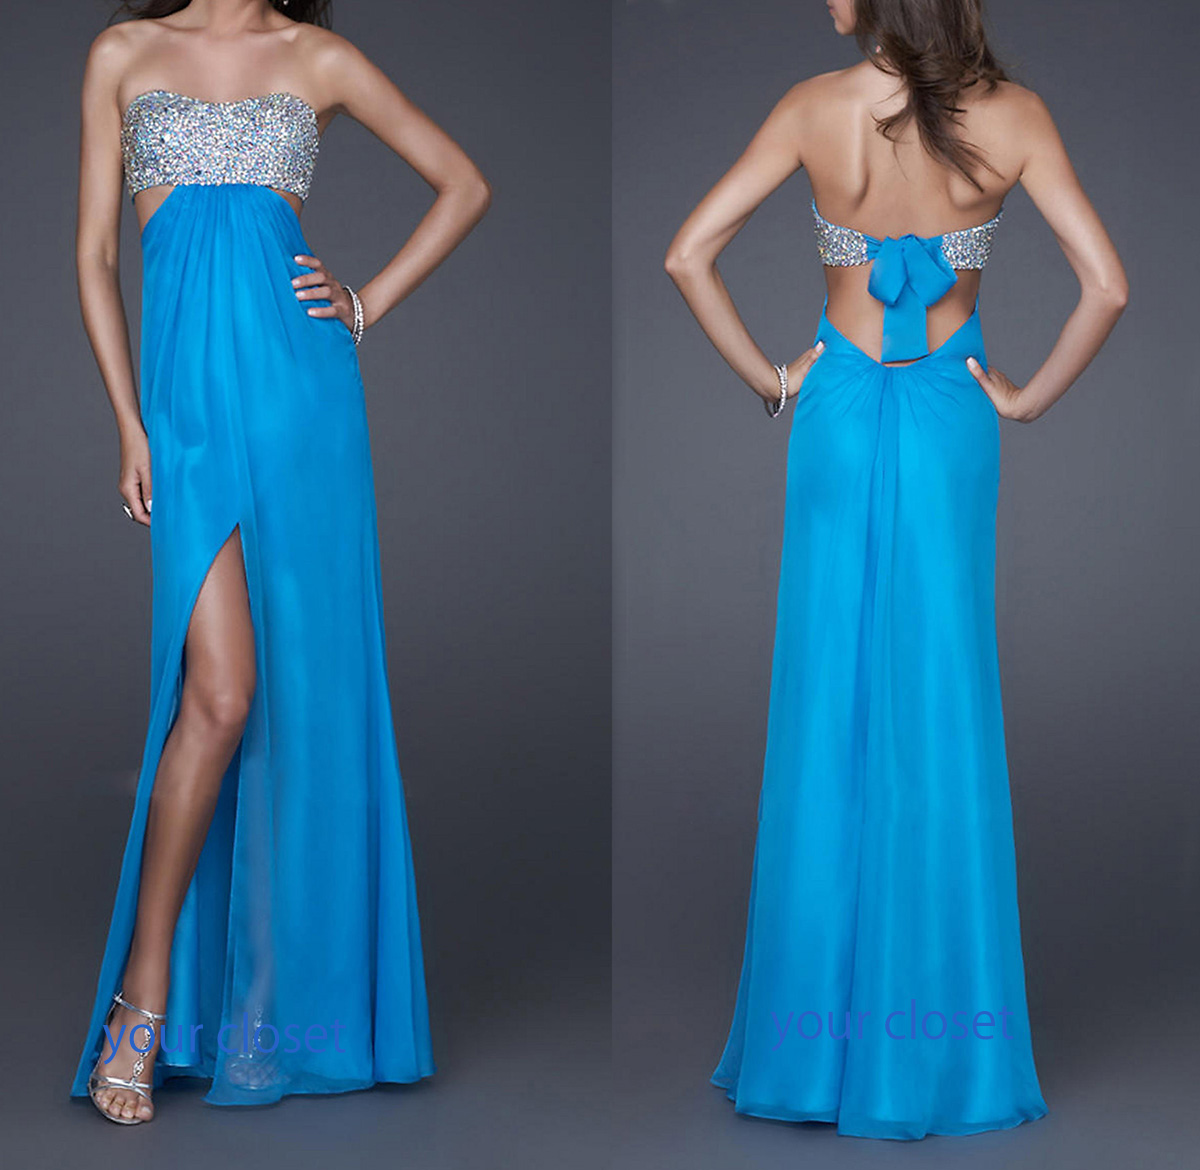 Cute Blue Prom Dresses Tumblr Viewing Gallery